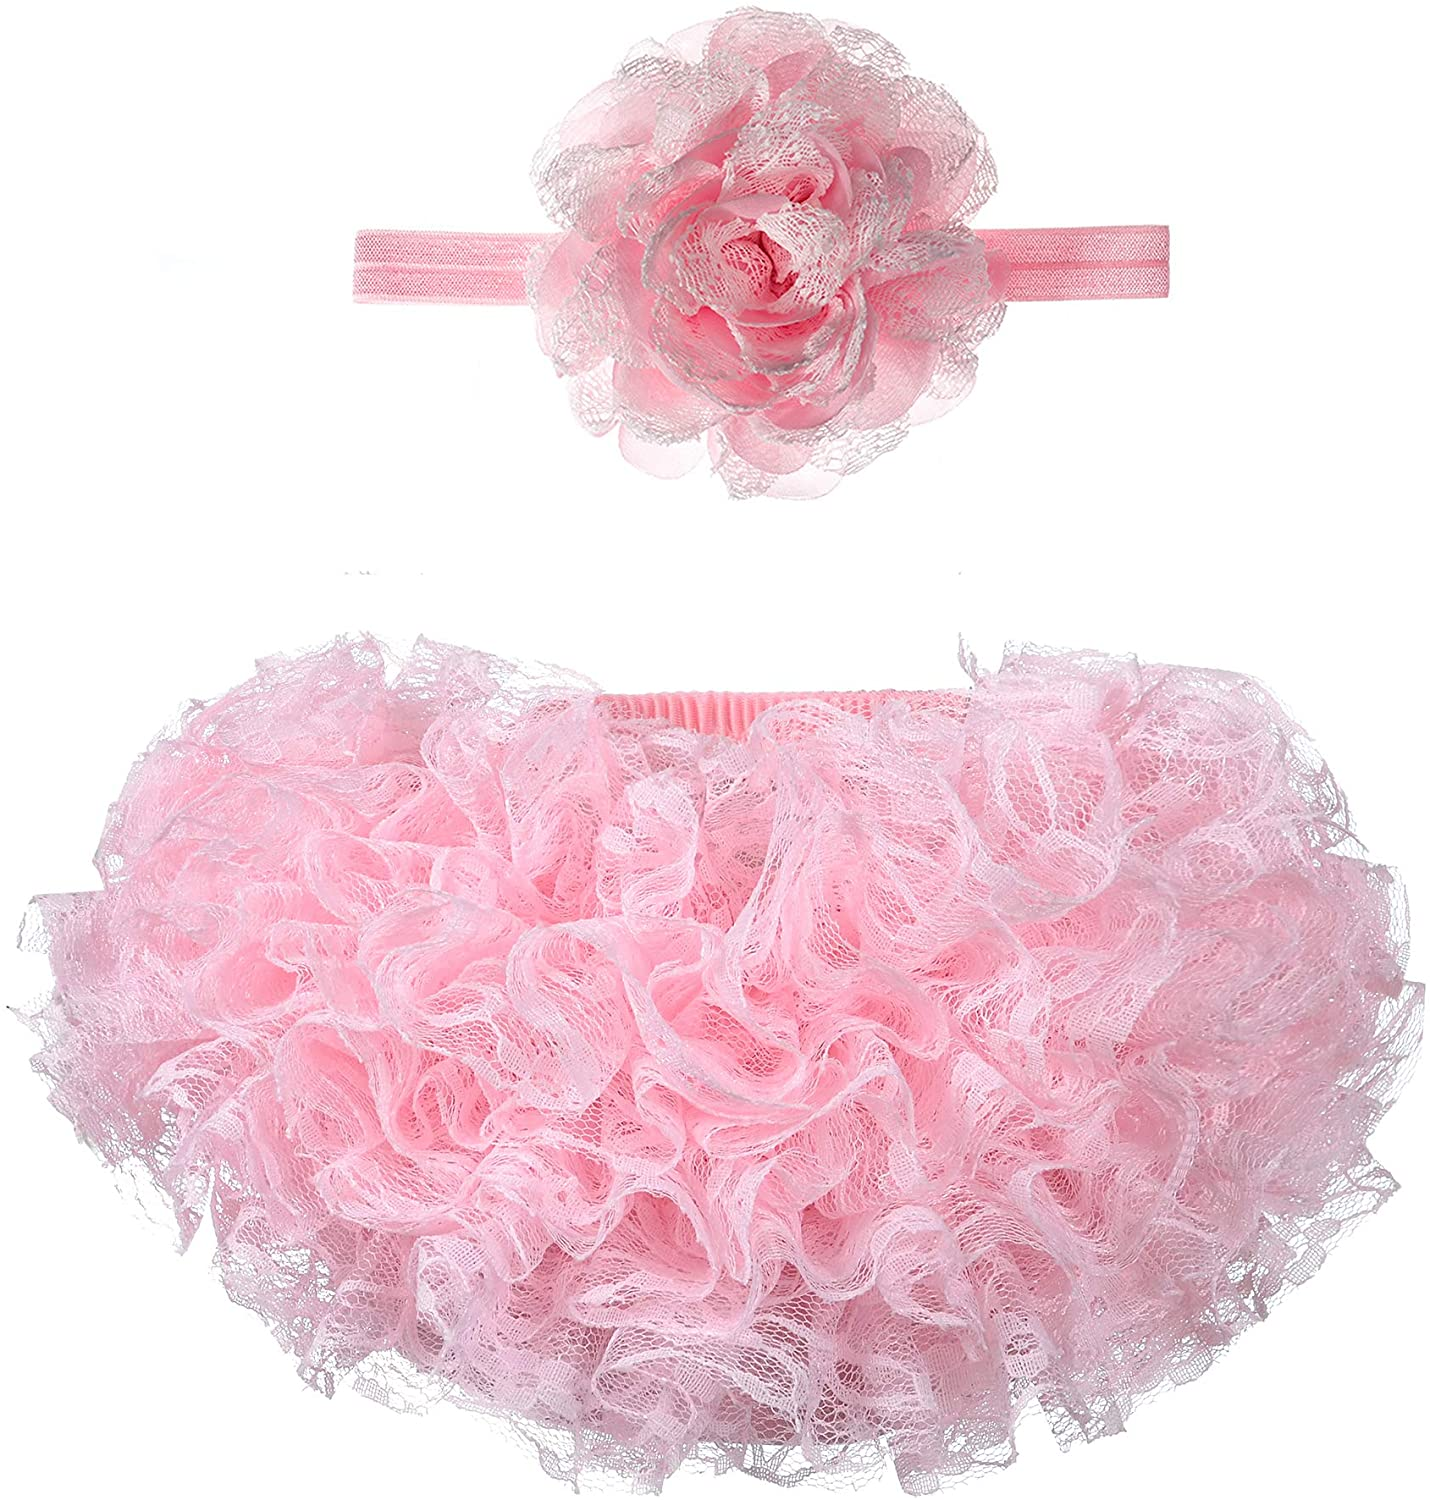 Baby Bloomers Newborn Ruffle Diaper Covers Baby Tulle Bloomer Headband Set 0-3 Months